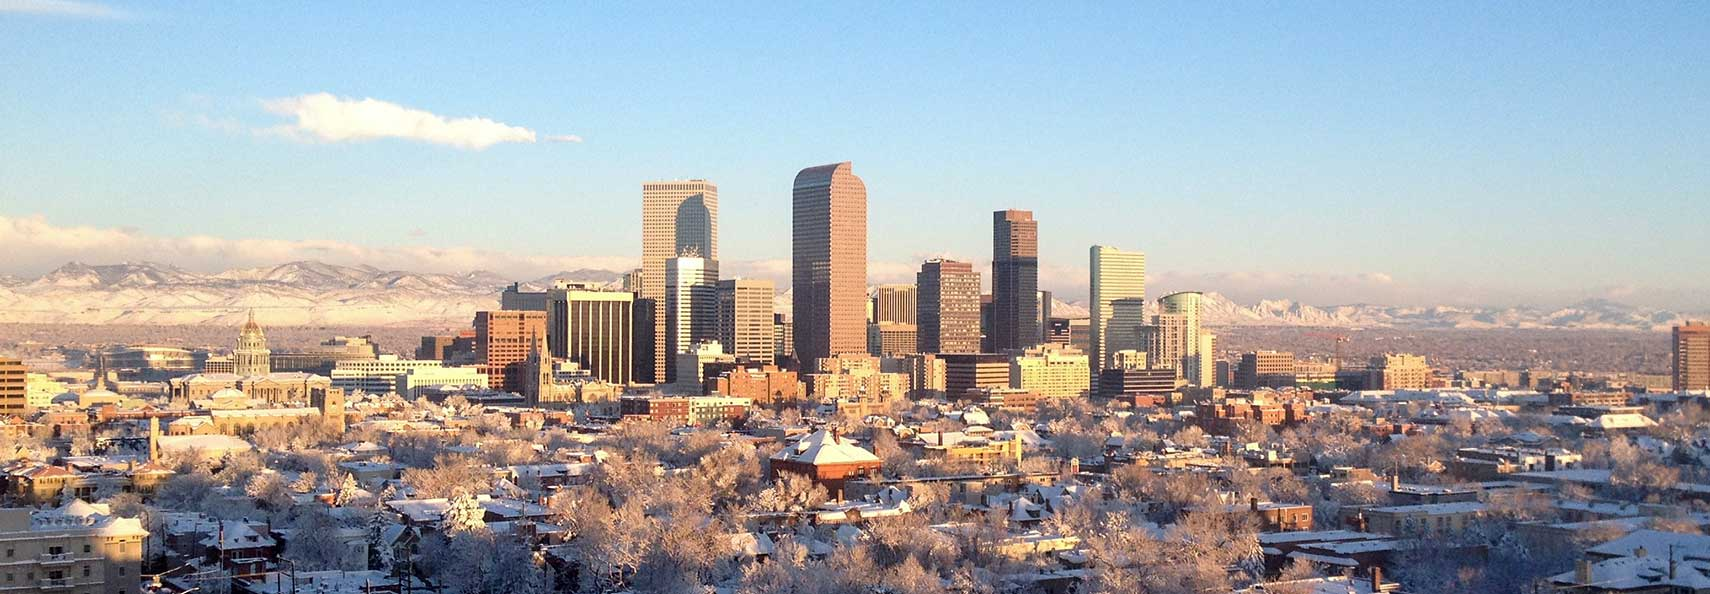 Google Map of Denver, Colorado, USA - Nations Online Project